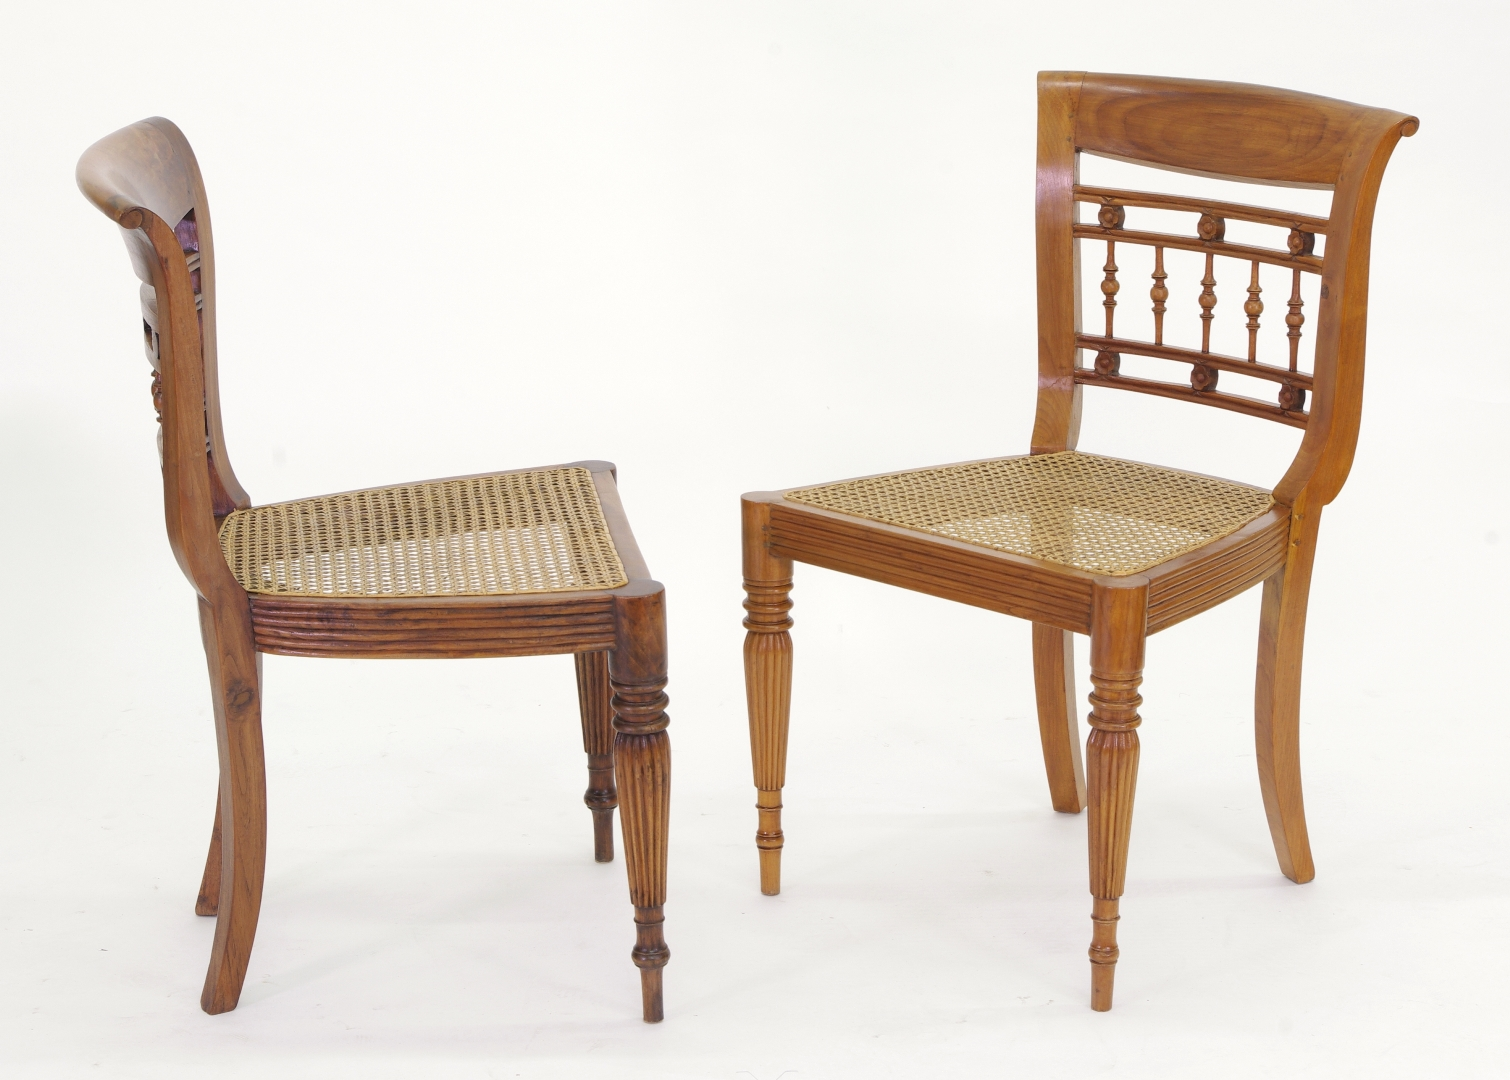 View 4: Set of Six British Colonial Dining Chairs, c. 1830